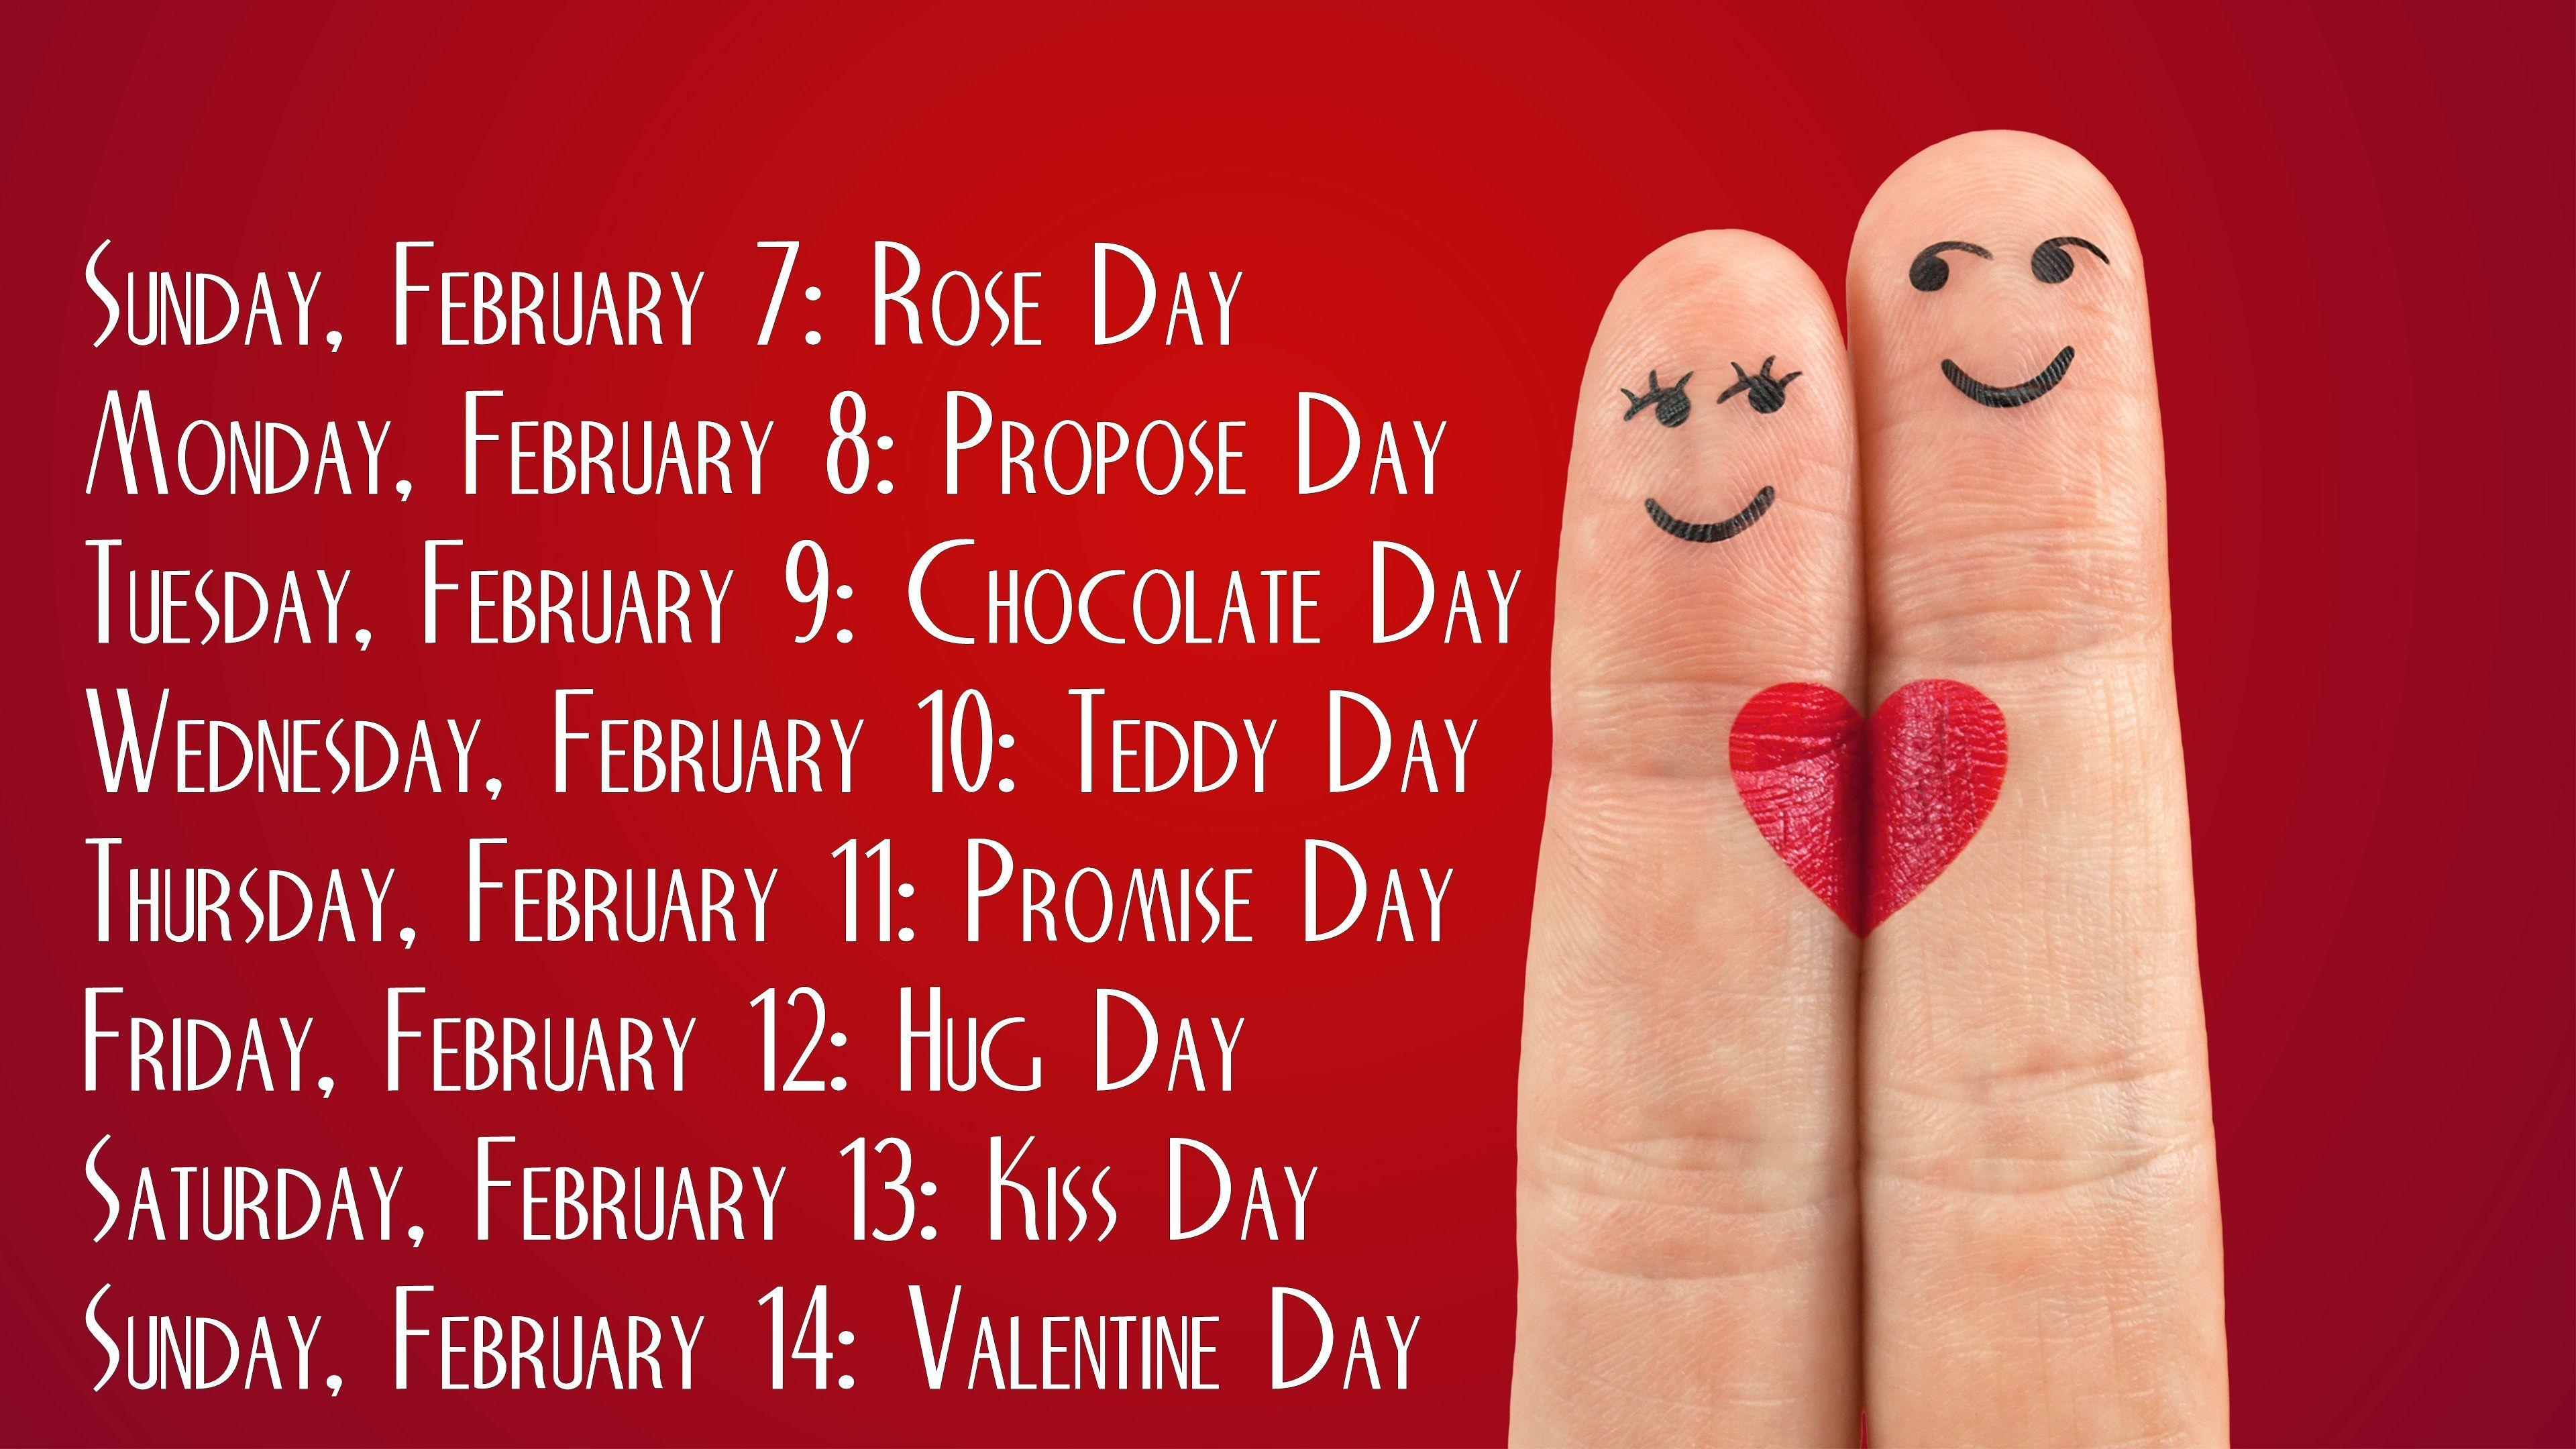 Valentine week name with date calender hd wallpapers